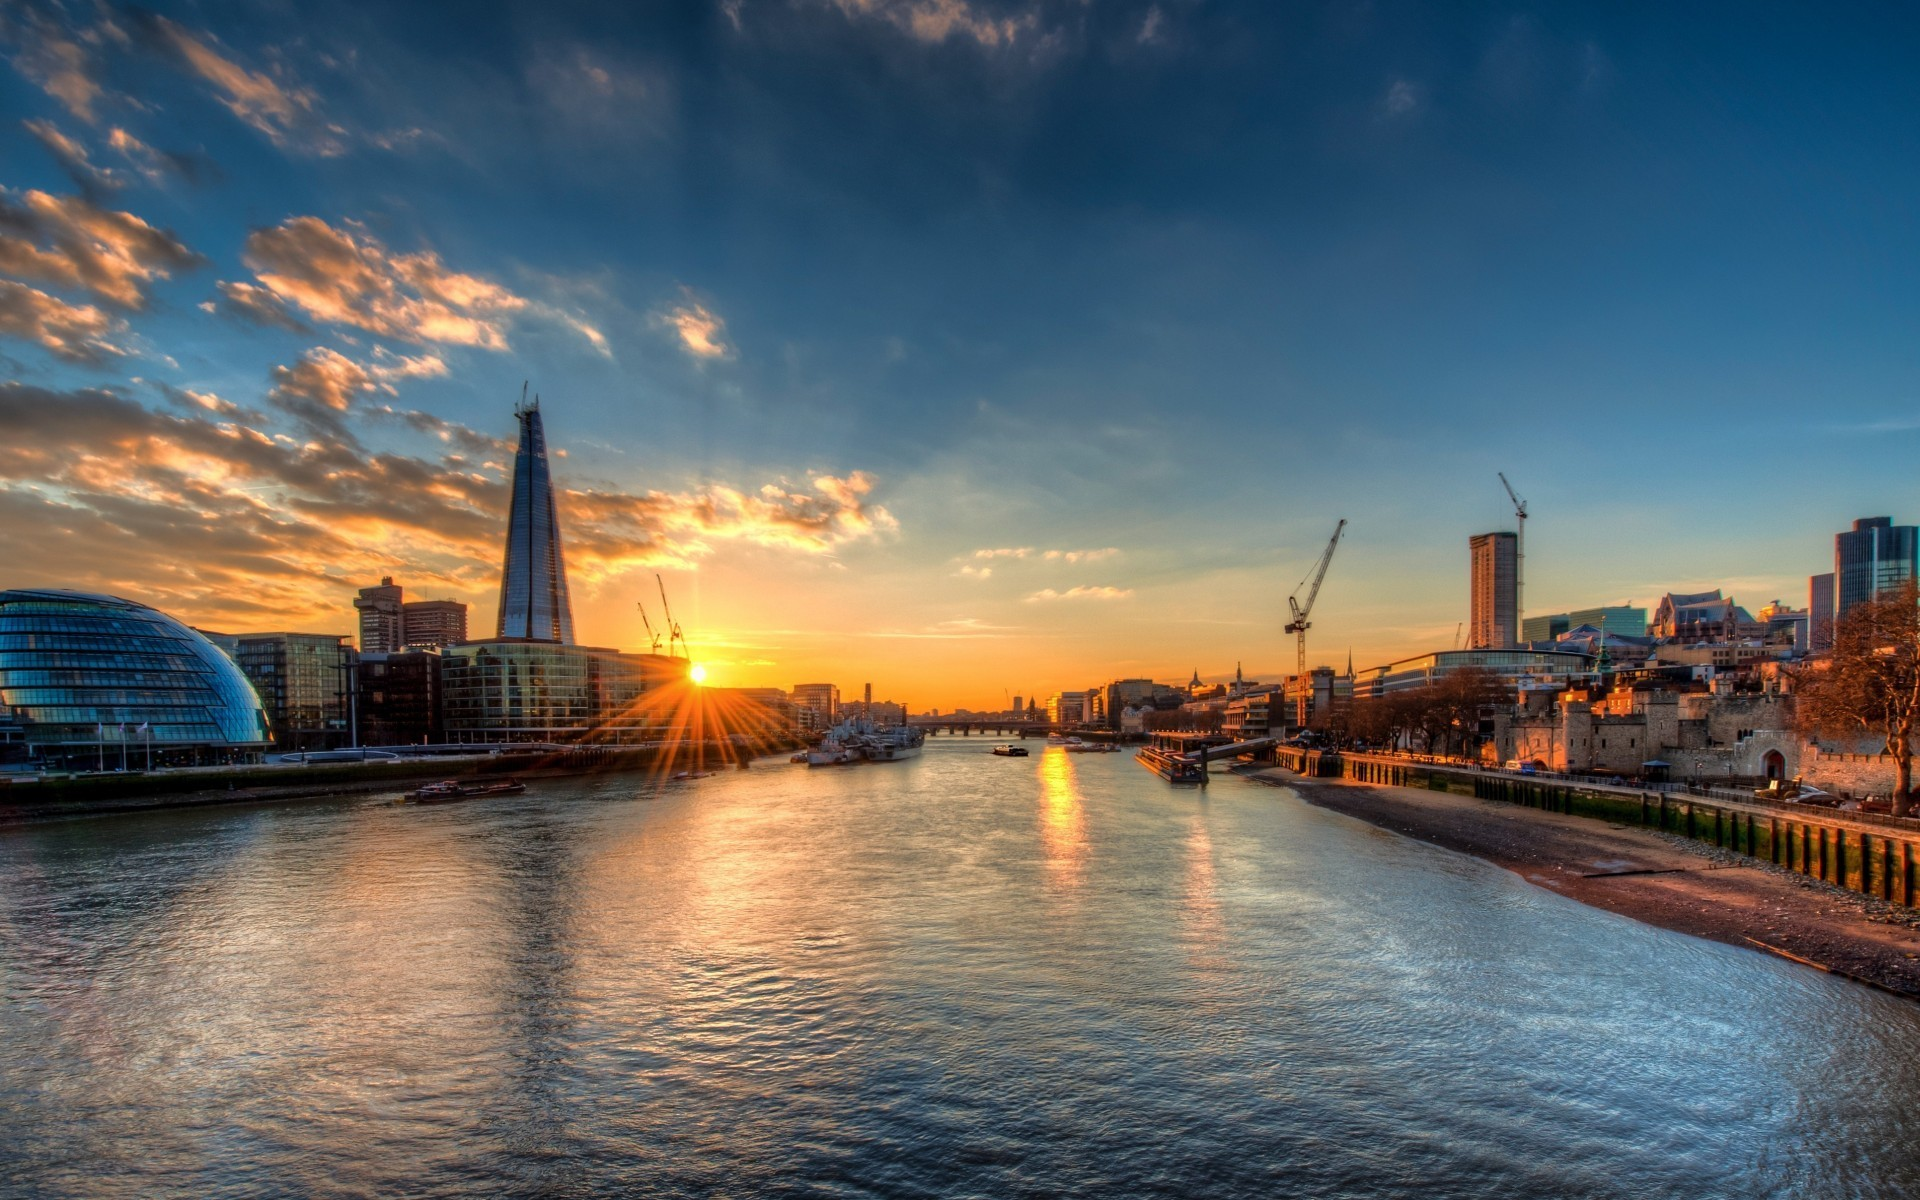 1920x1200 London City Skyline Wallpaper Murals Pictowall 1920×1080 London Wallpaper  (38 Wallpapers) |